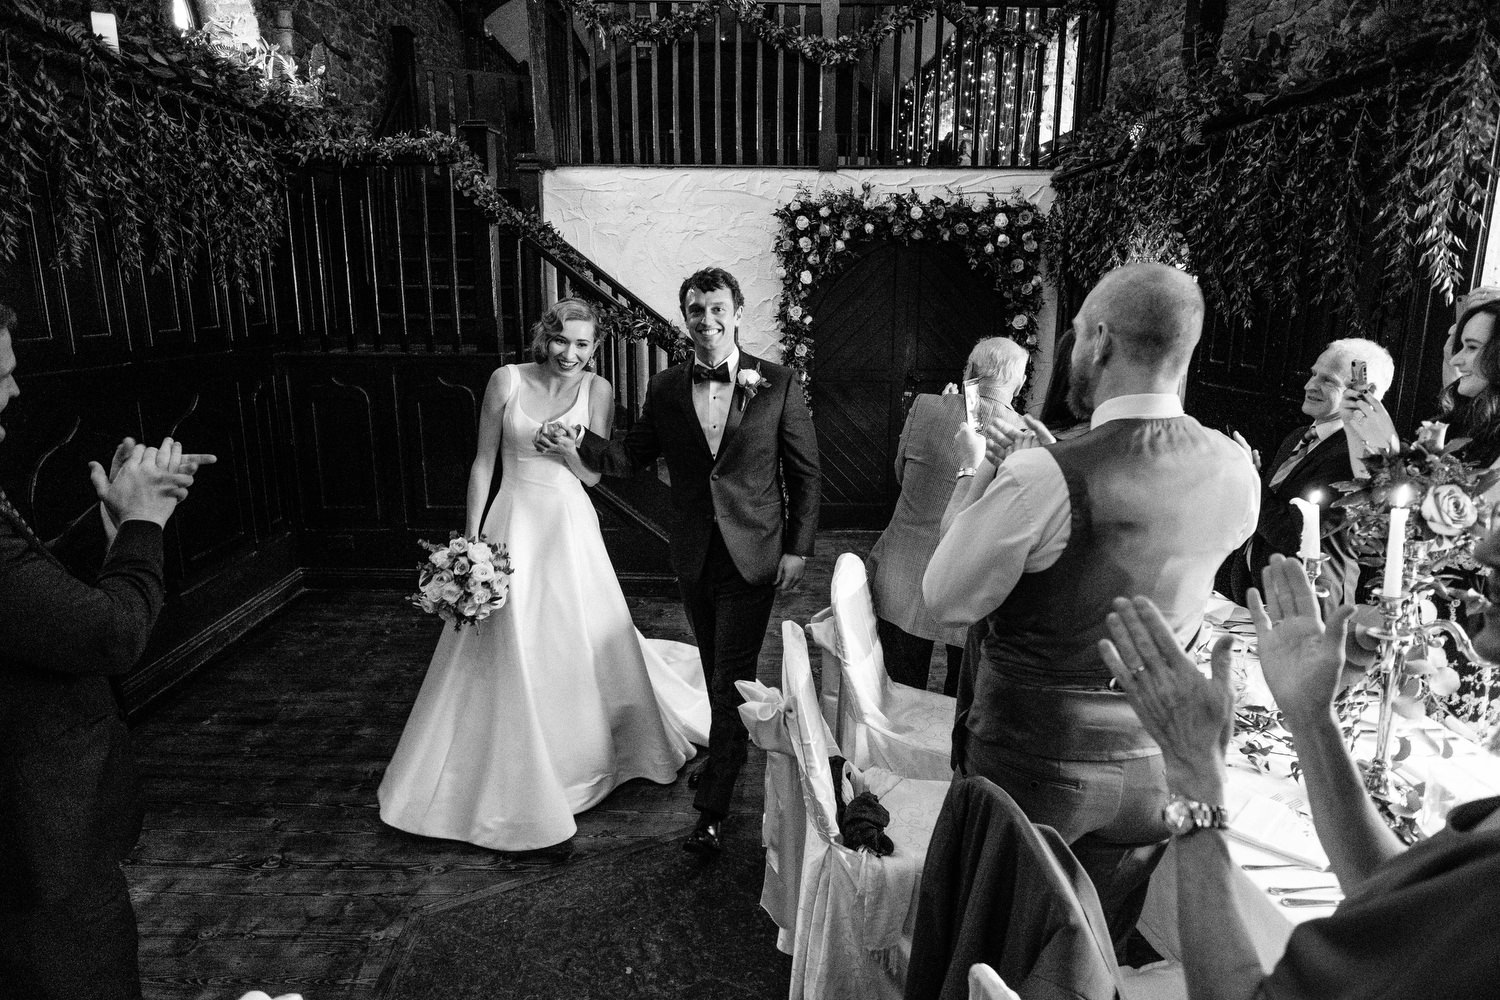 000000000000000000000176_bride_style_vintage_photography_david_mcclelland_ireland_castle_hollywood_kinnity_wedding_photographer_fujifilm